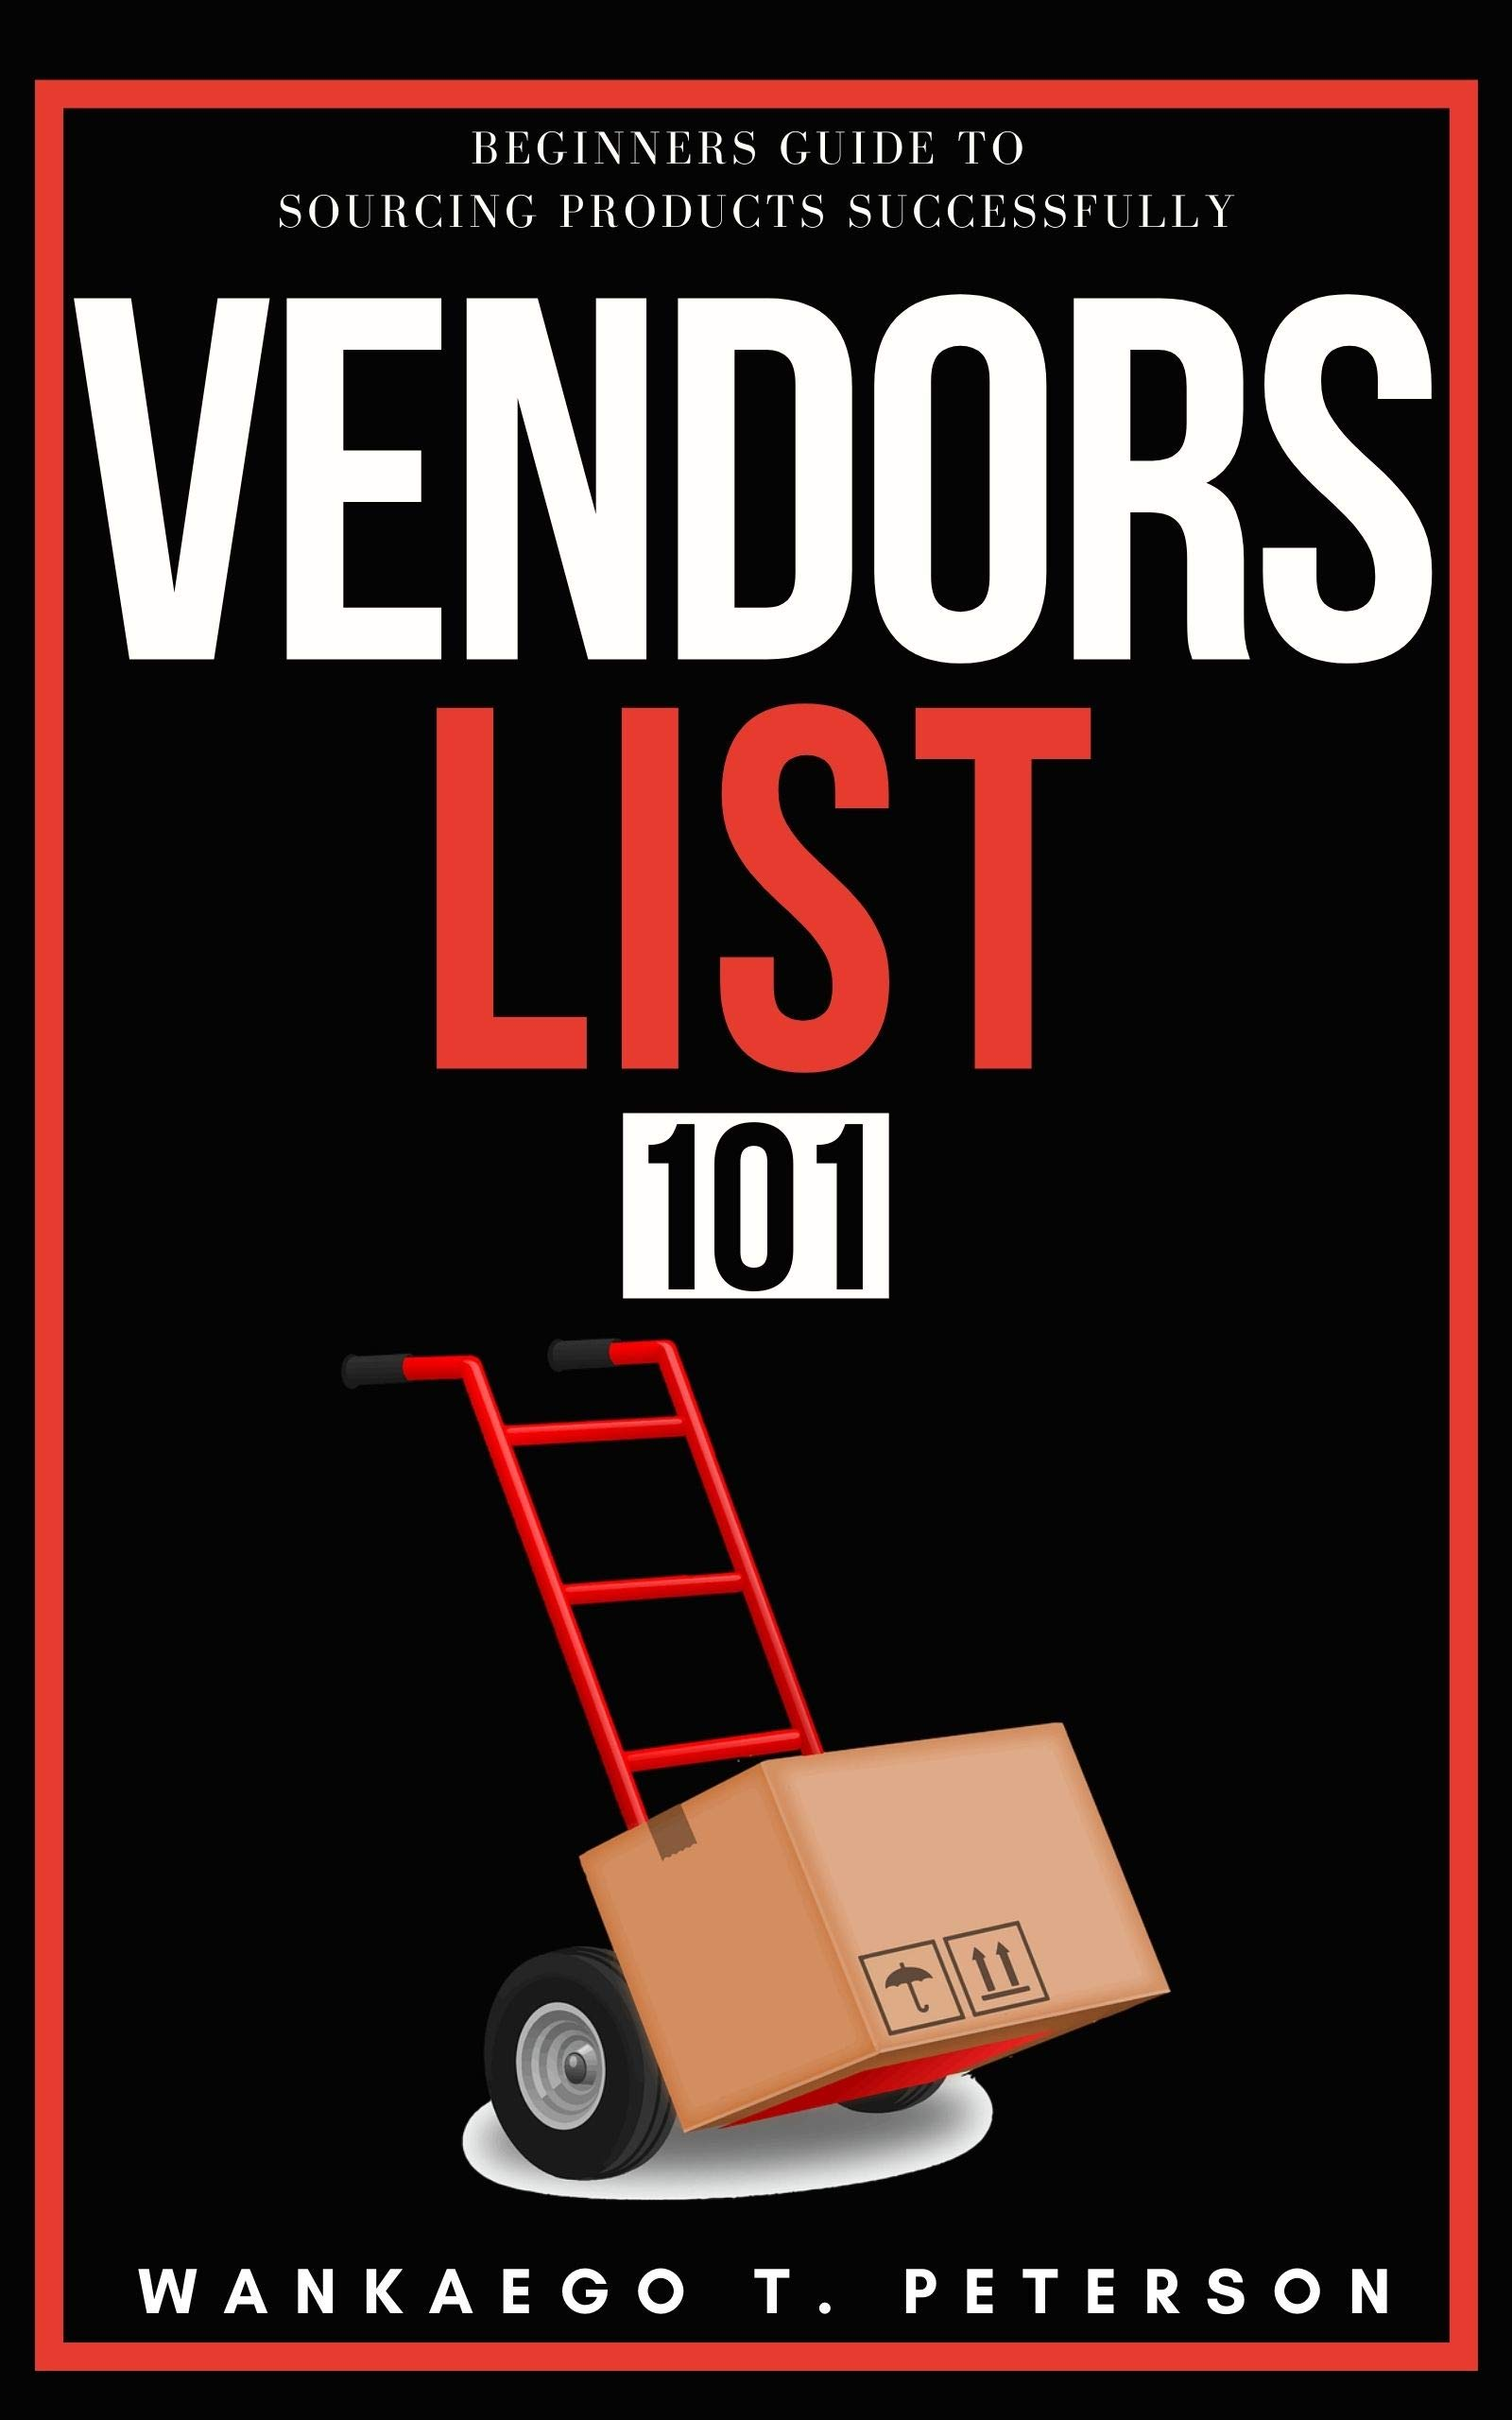 Vendors List 101: Beginners Guide to Sourcing Products Successfully